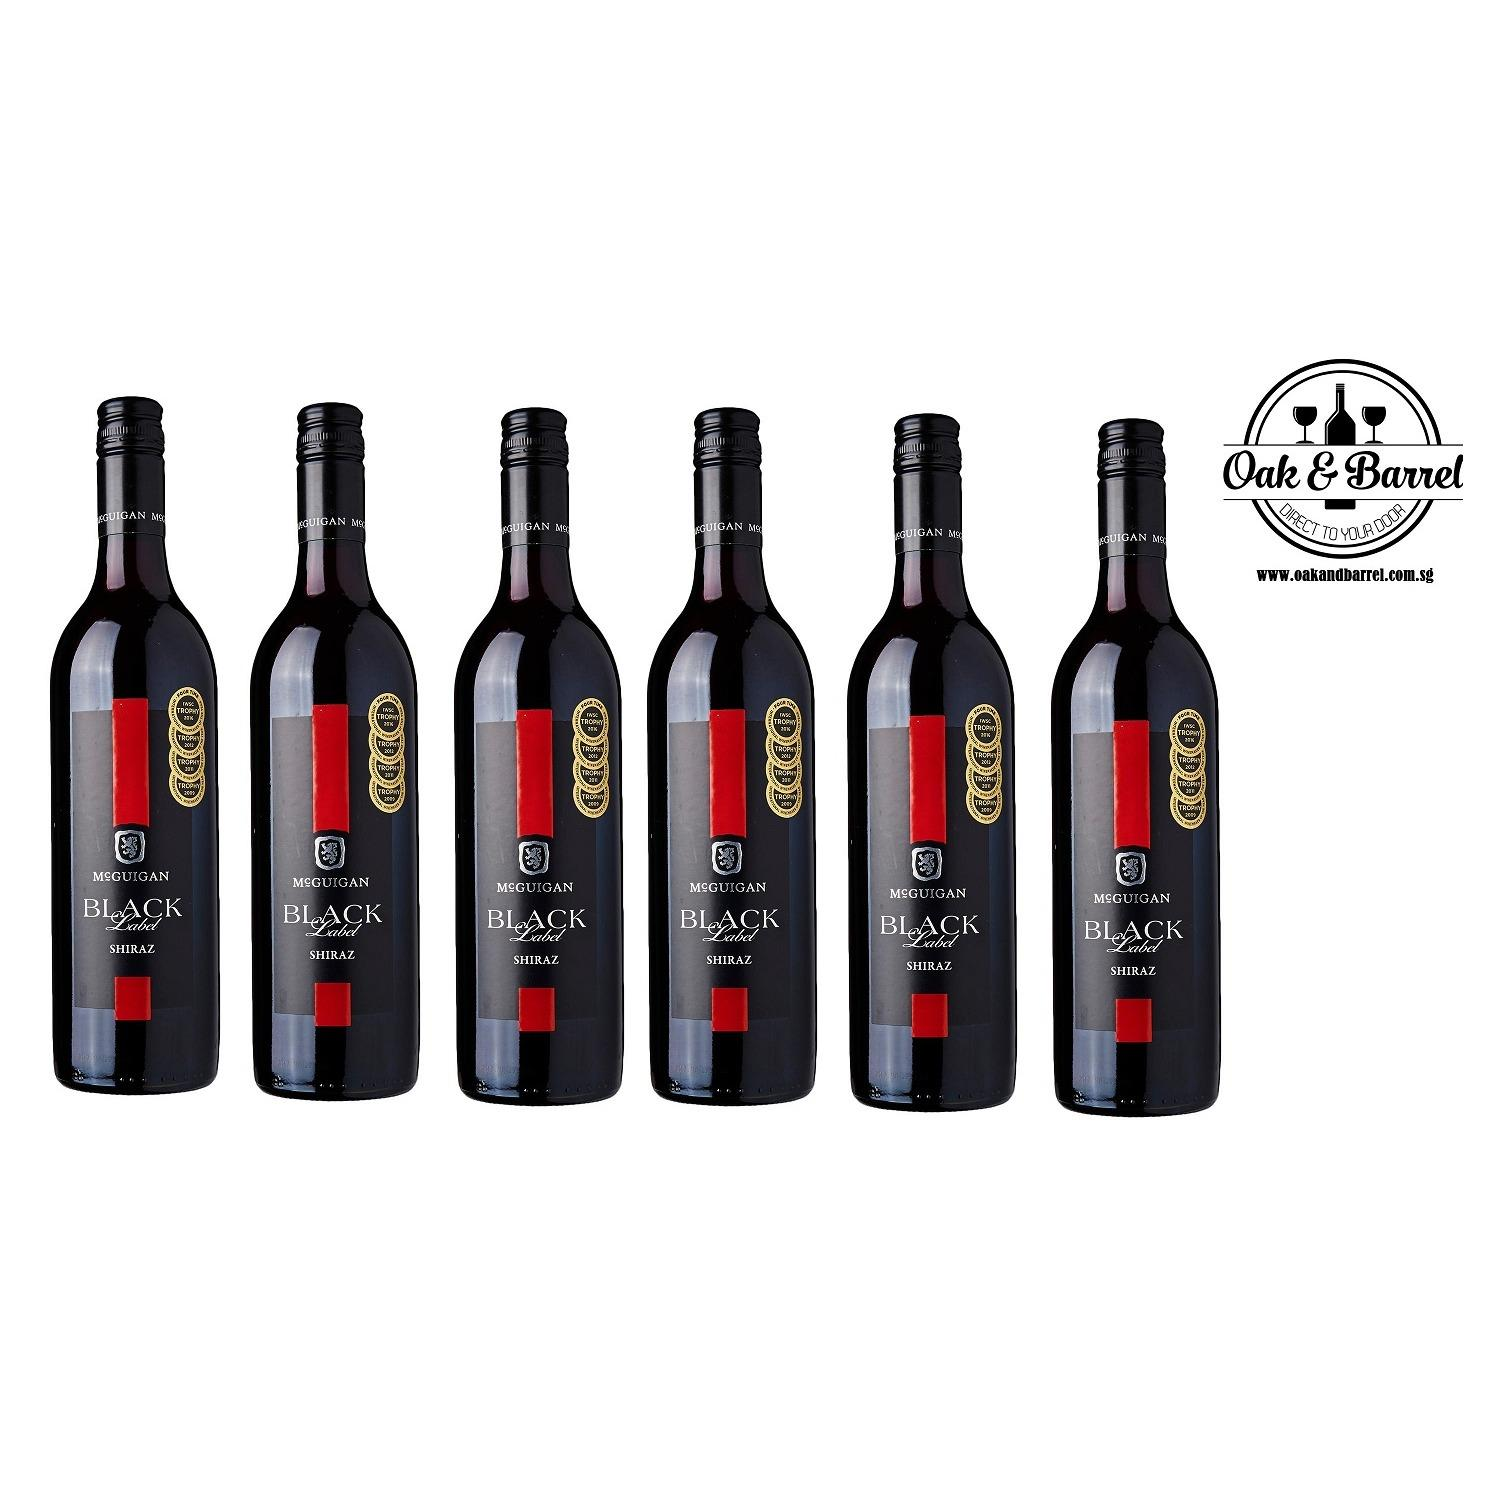 Where Can I Buy Mcguigan Black Label Shiraz 750Ml X 6